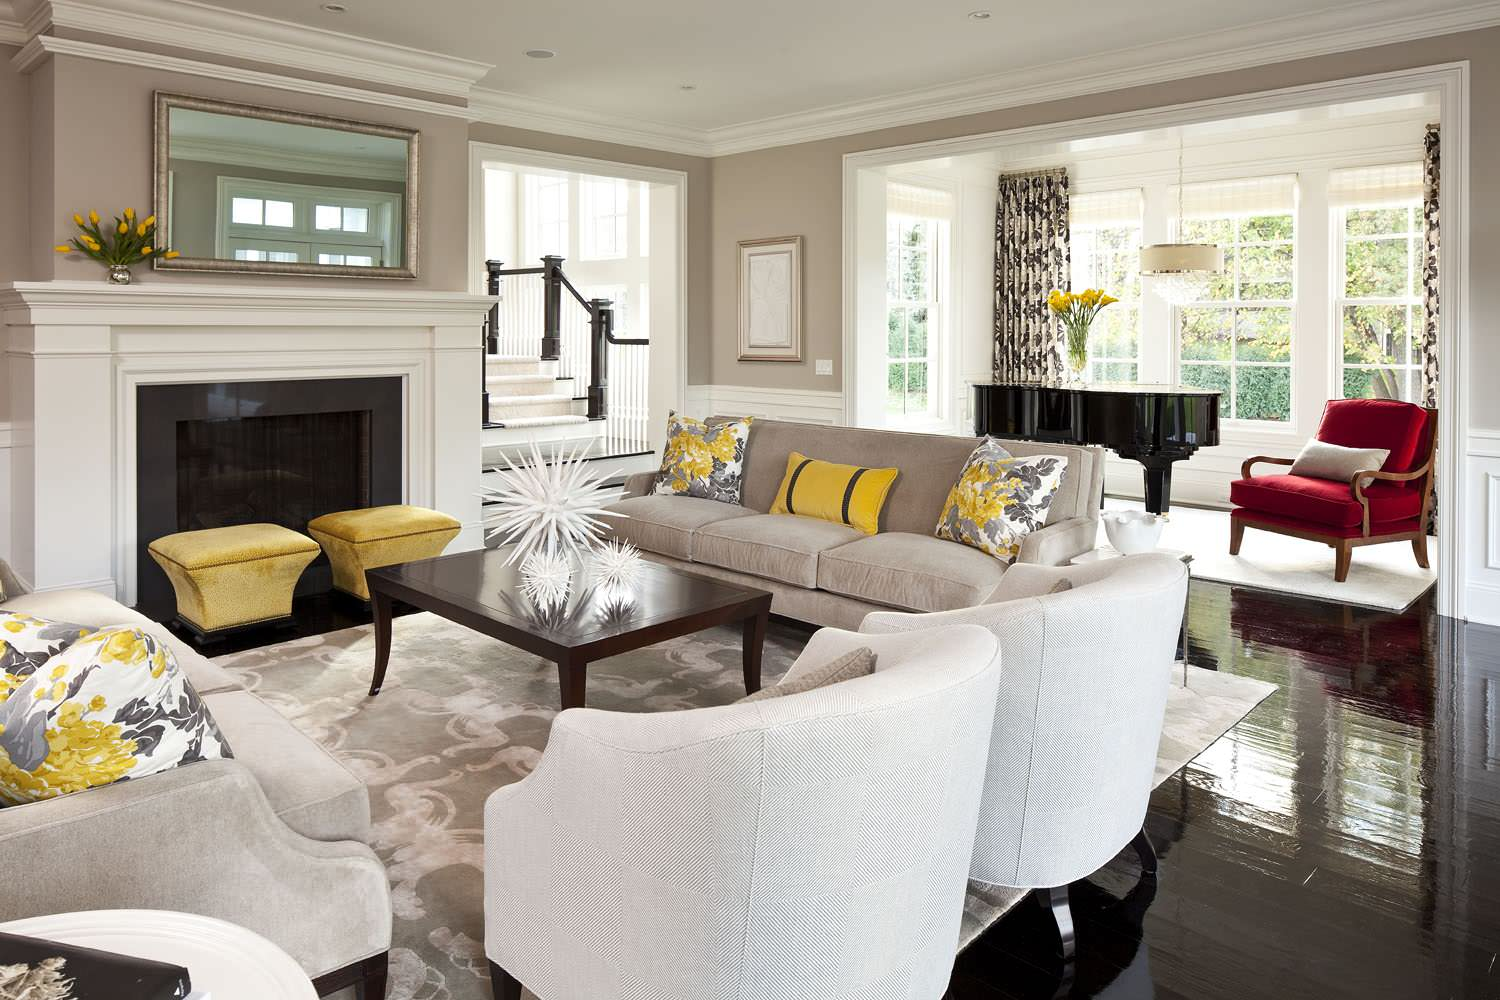 Interesting Home Using Best Interior Paint Ideas: Area Rug On Black Flooring Plus Cocktail Table And Decorative Pillows For Couches Also Fireplace And Mirror In Transitional Living Room With Best Interior Paint Plus Red Chair And Sofa